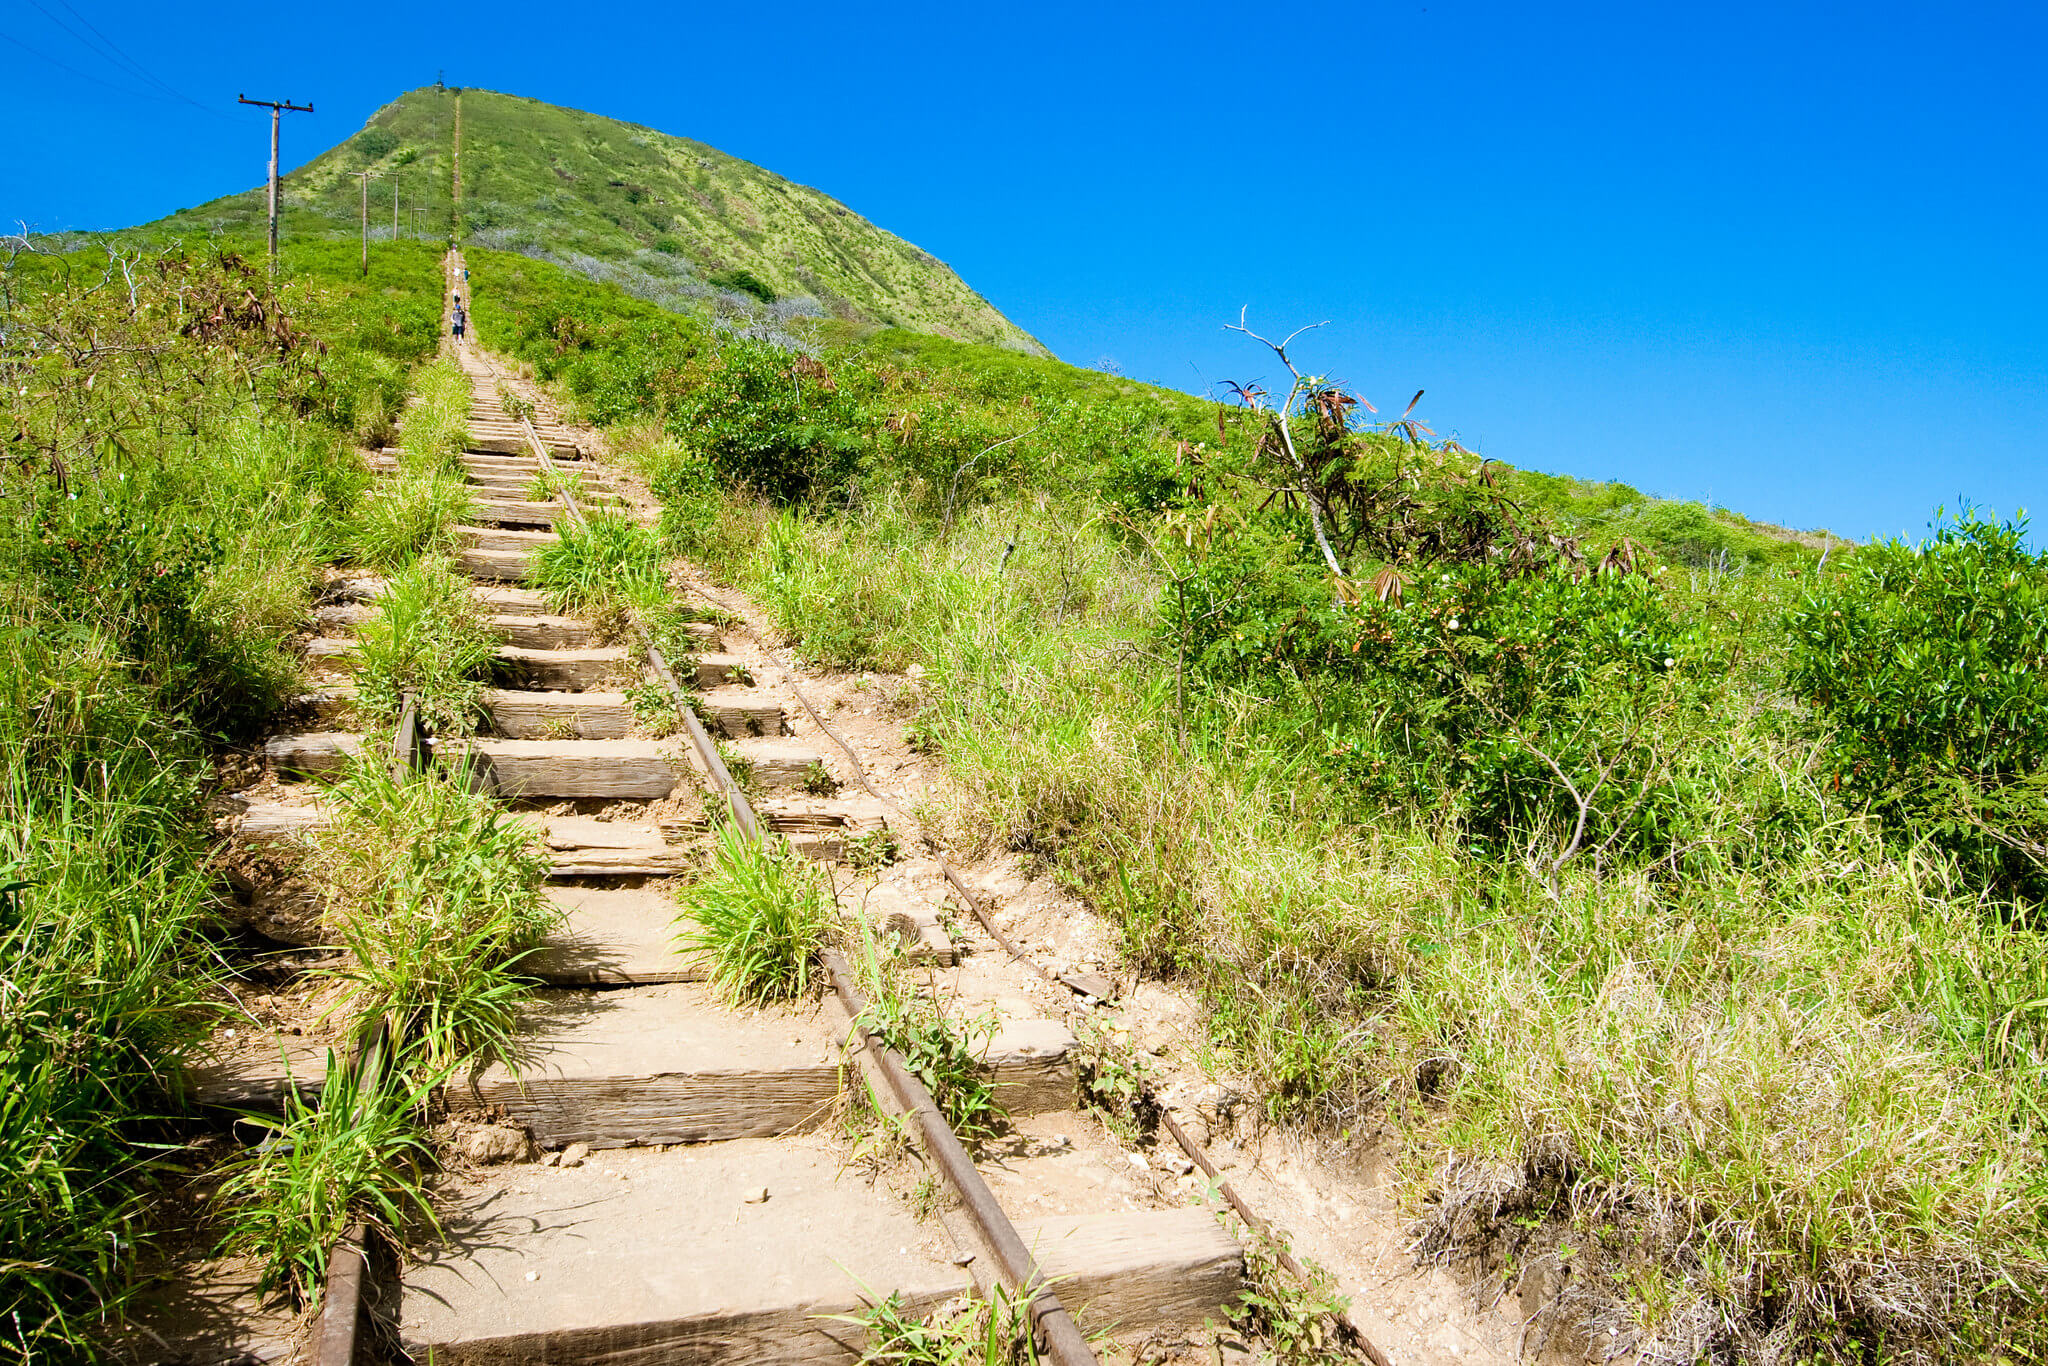 the Koko Head directions up the stairs of doom